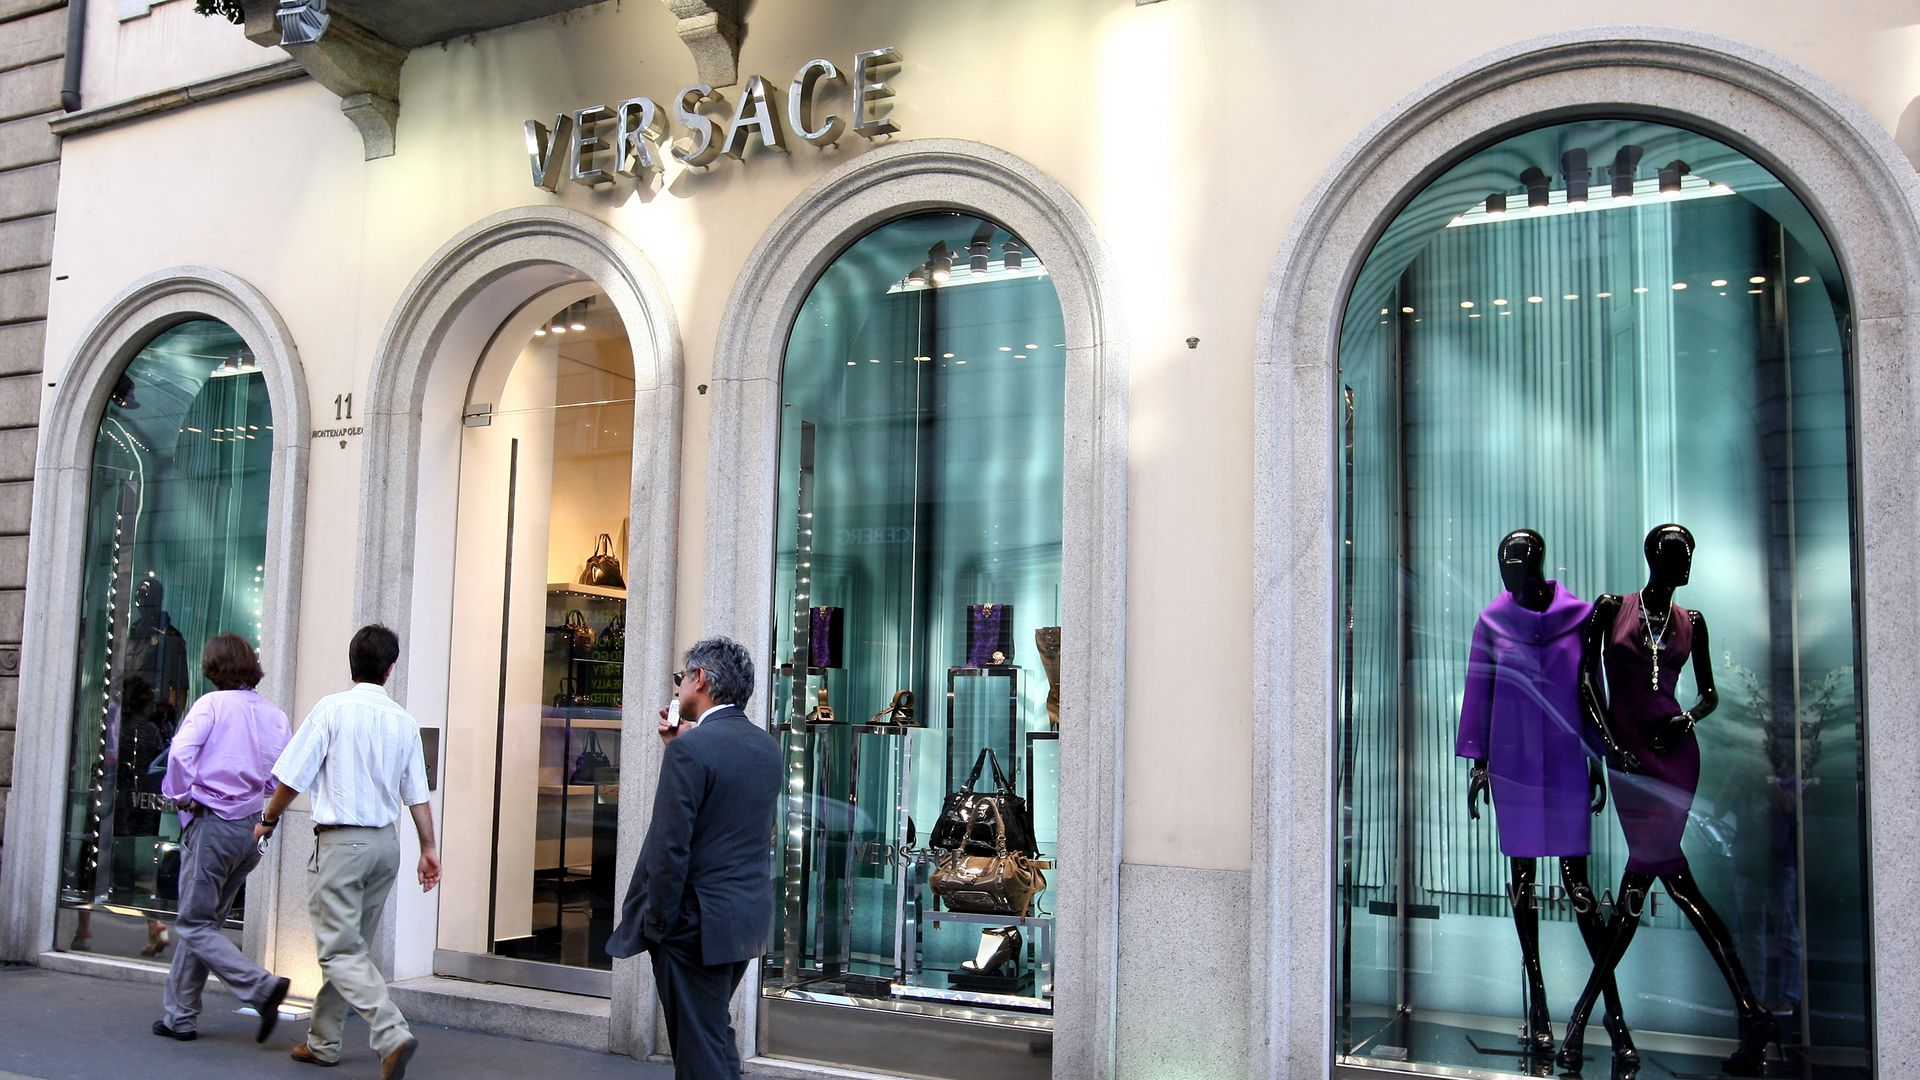 Outside of Versace store.